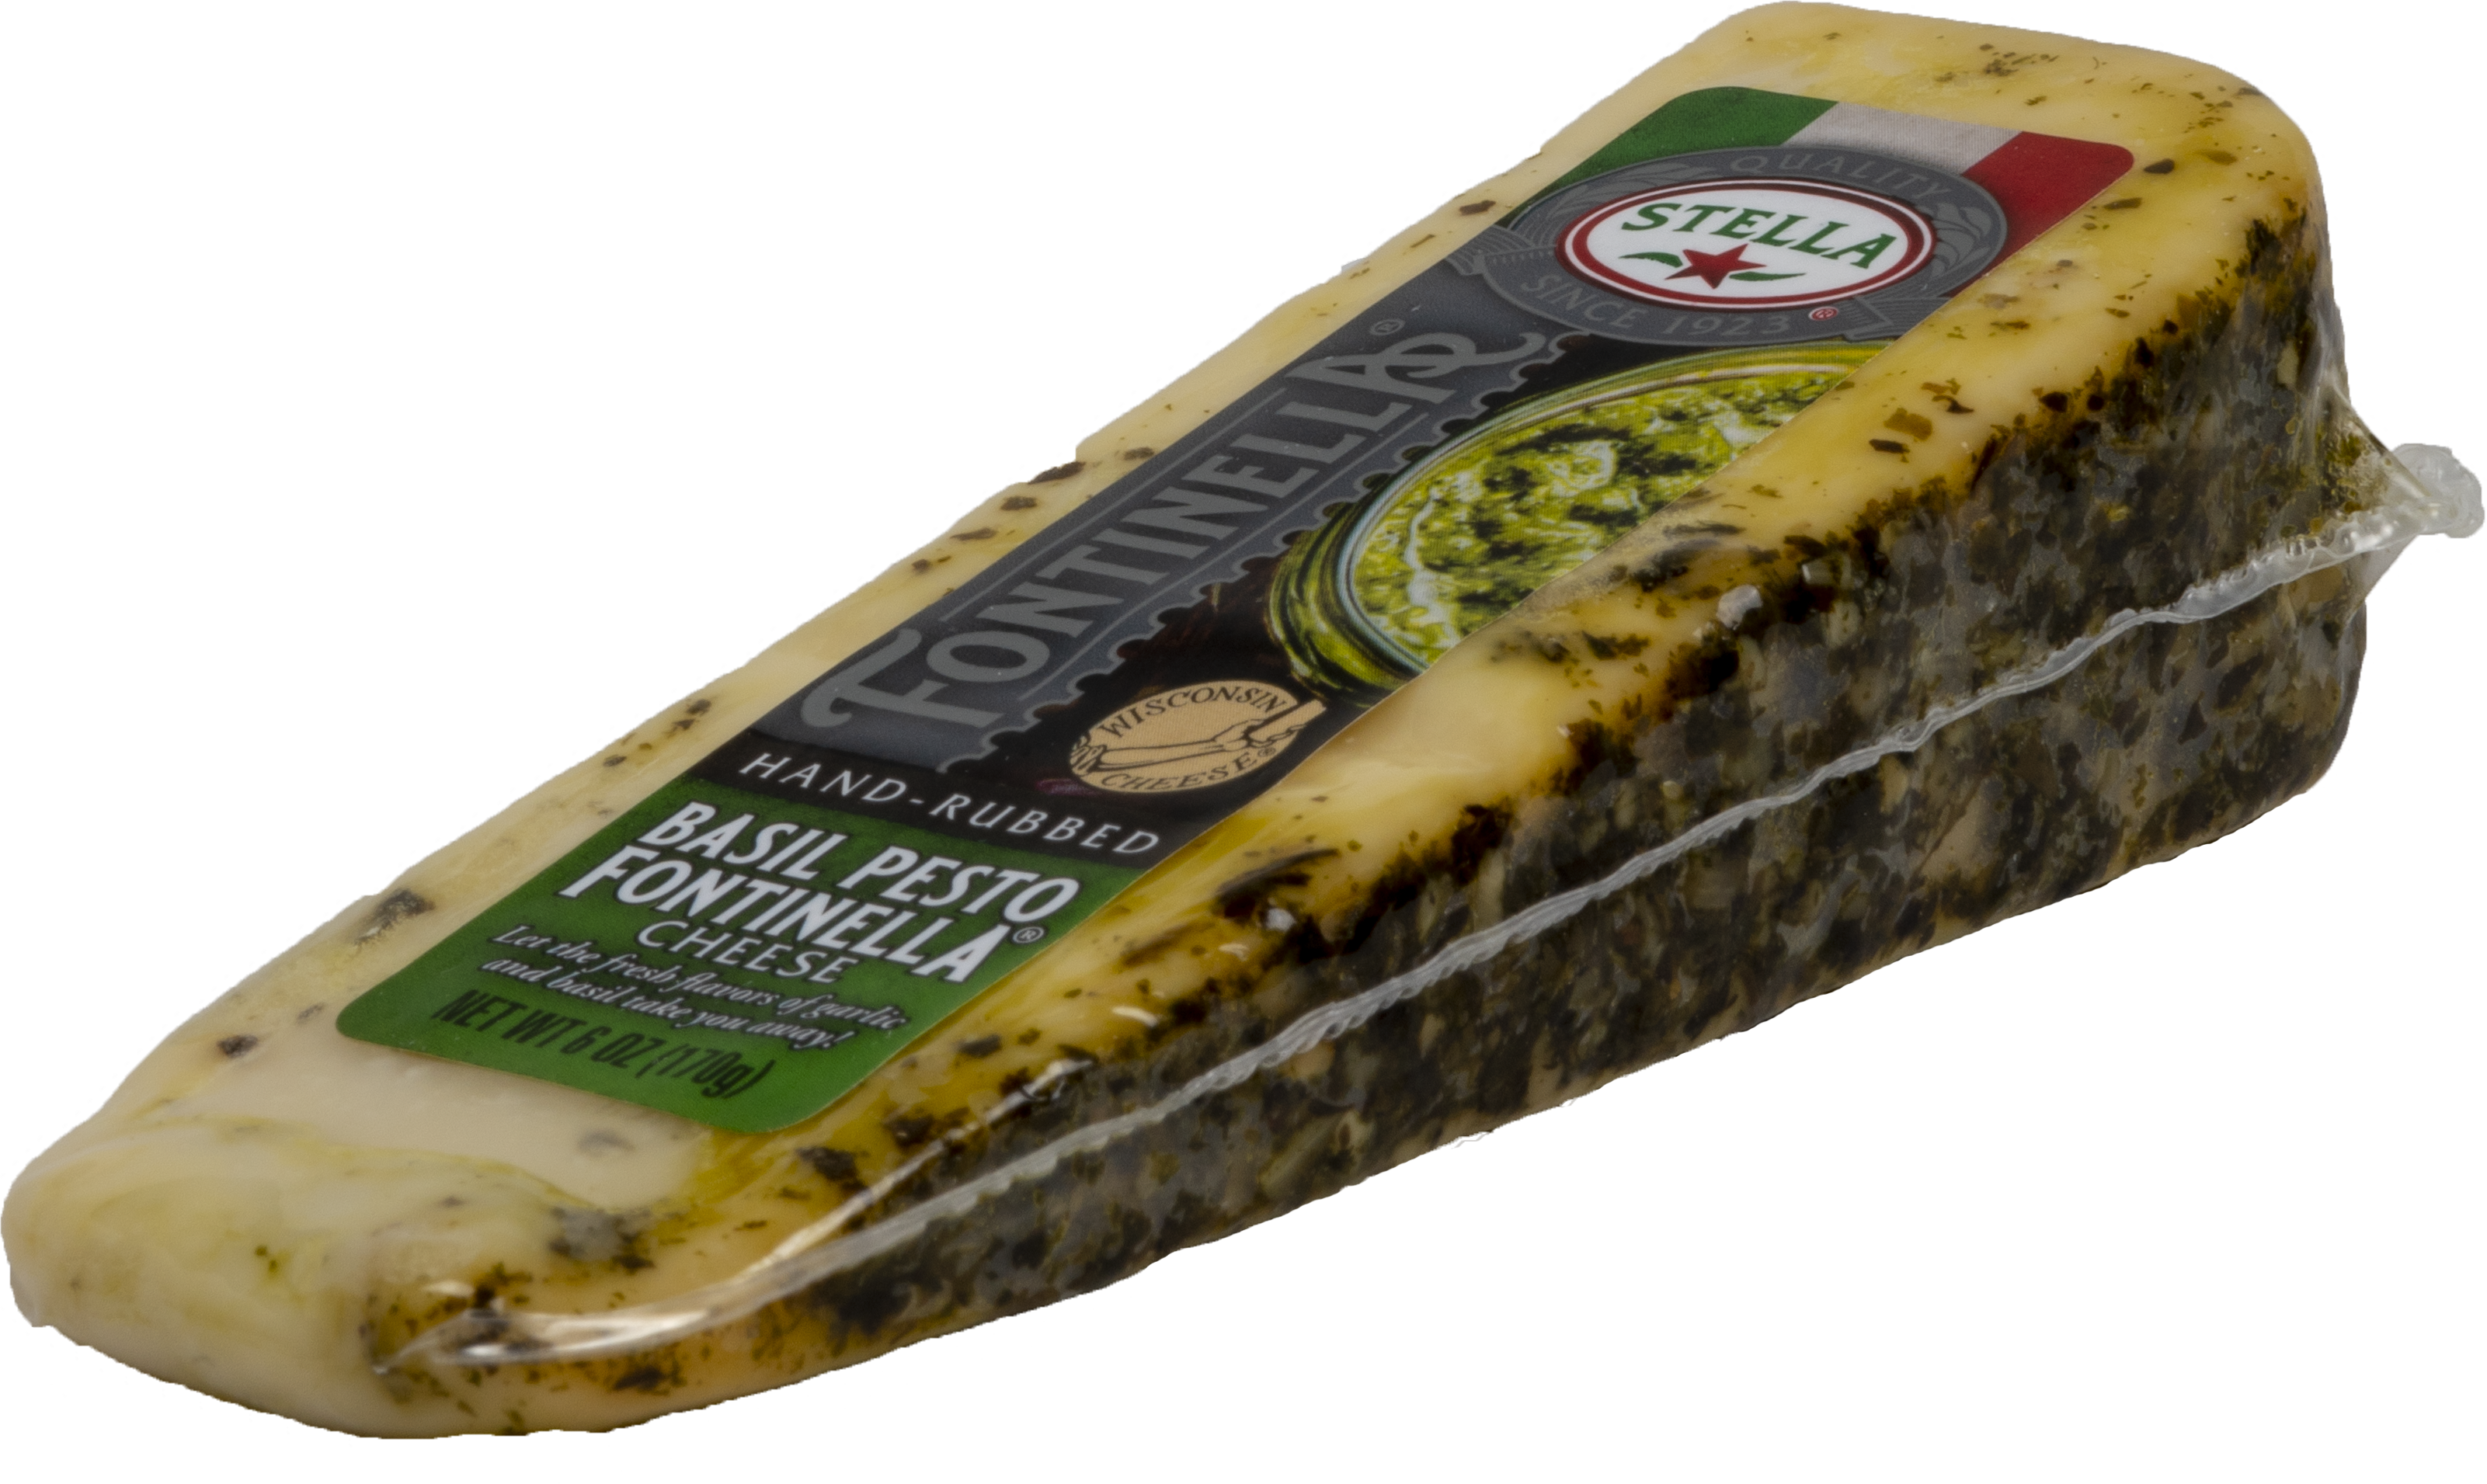 saputo rubbed cheese two sp